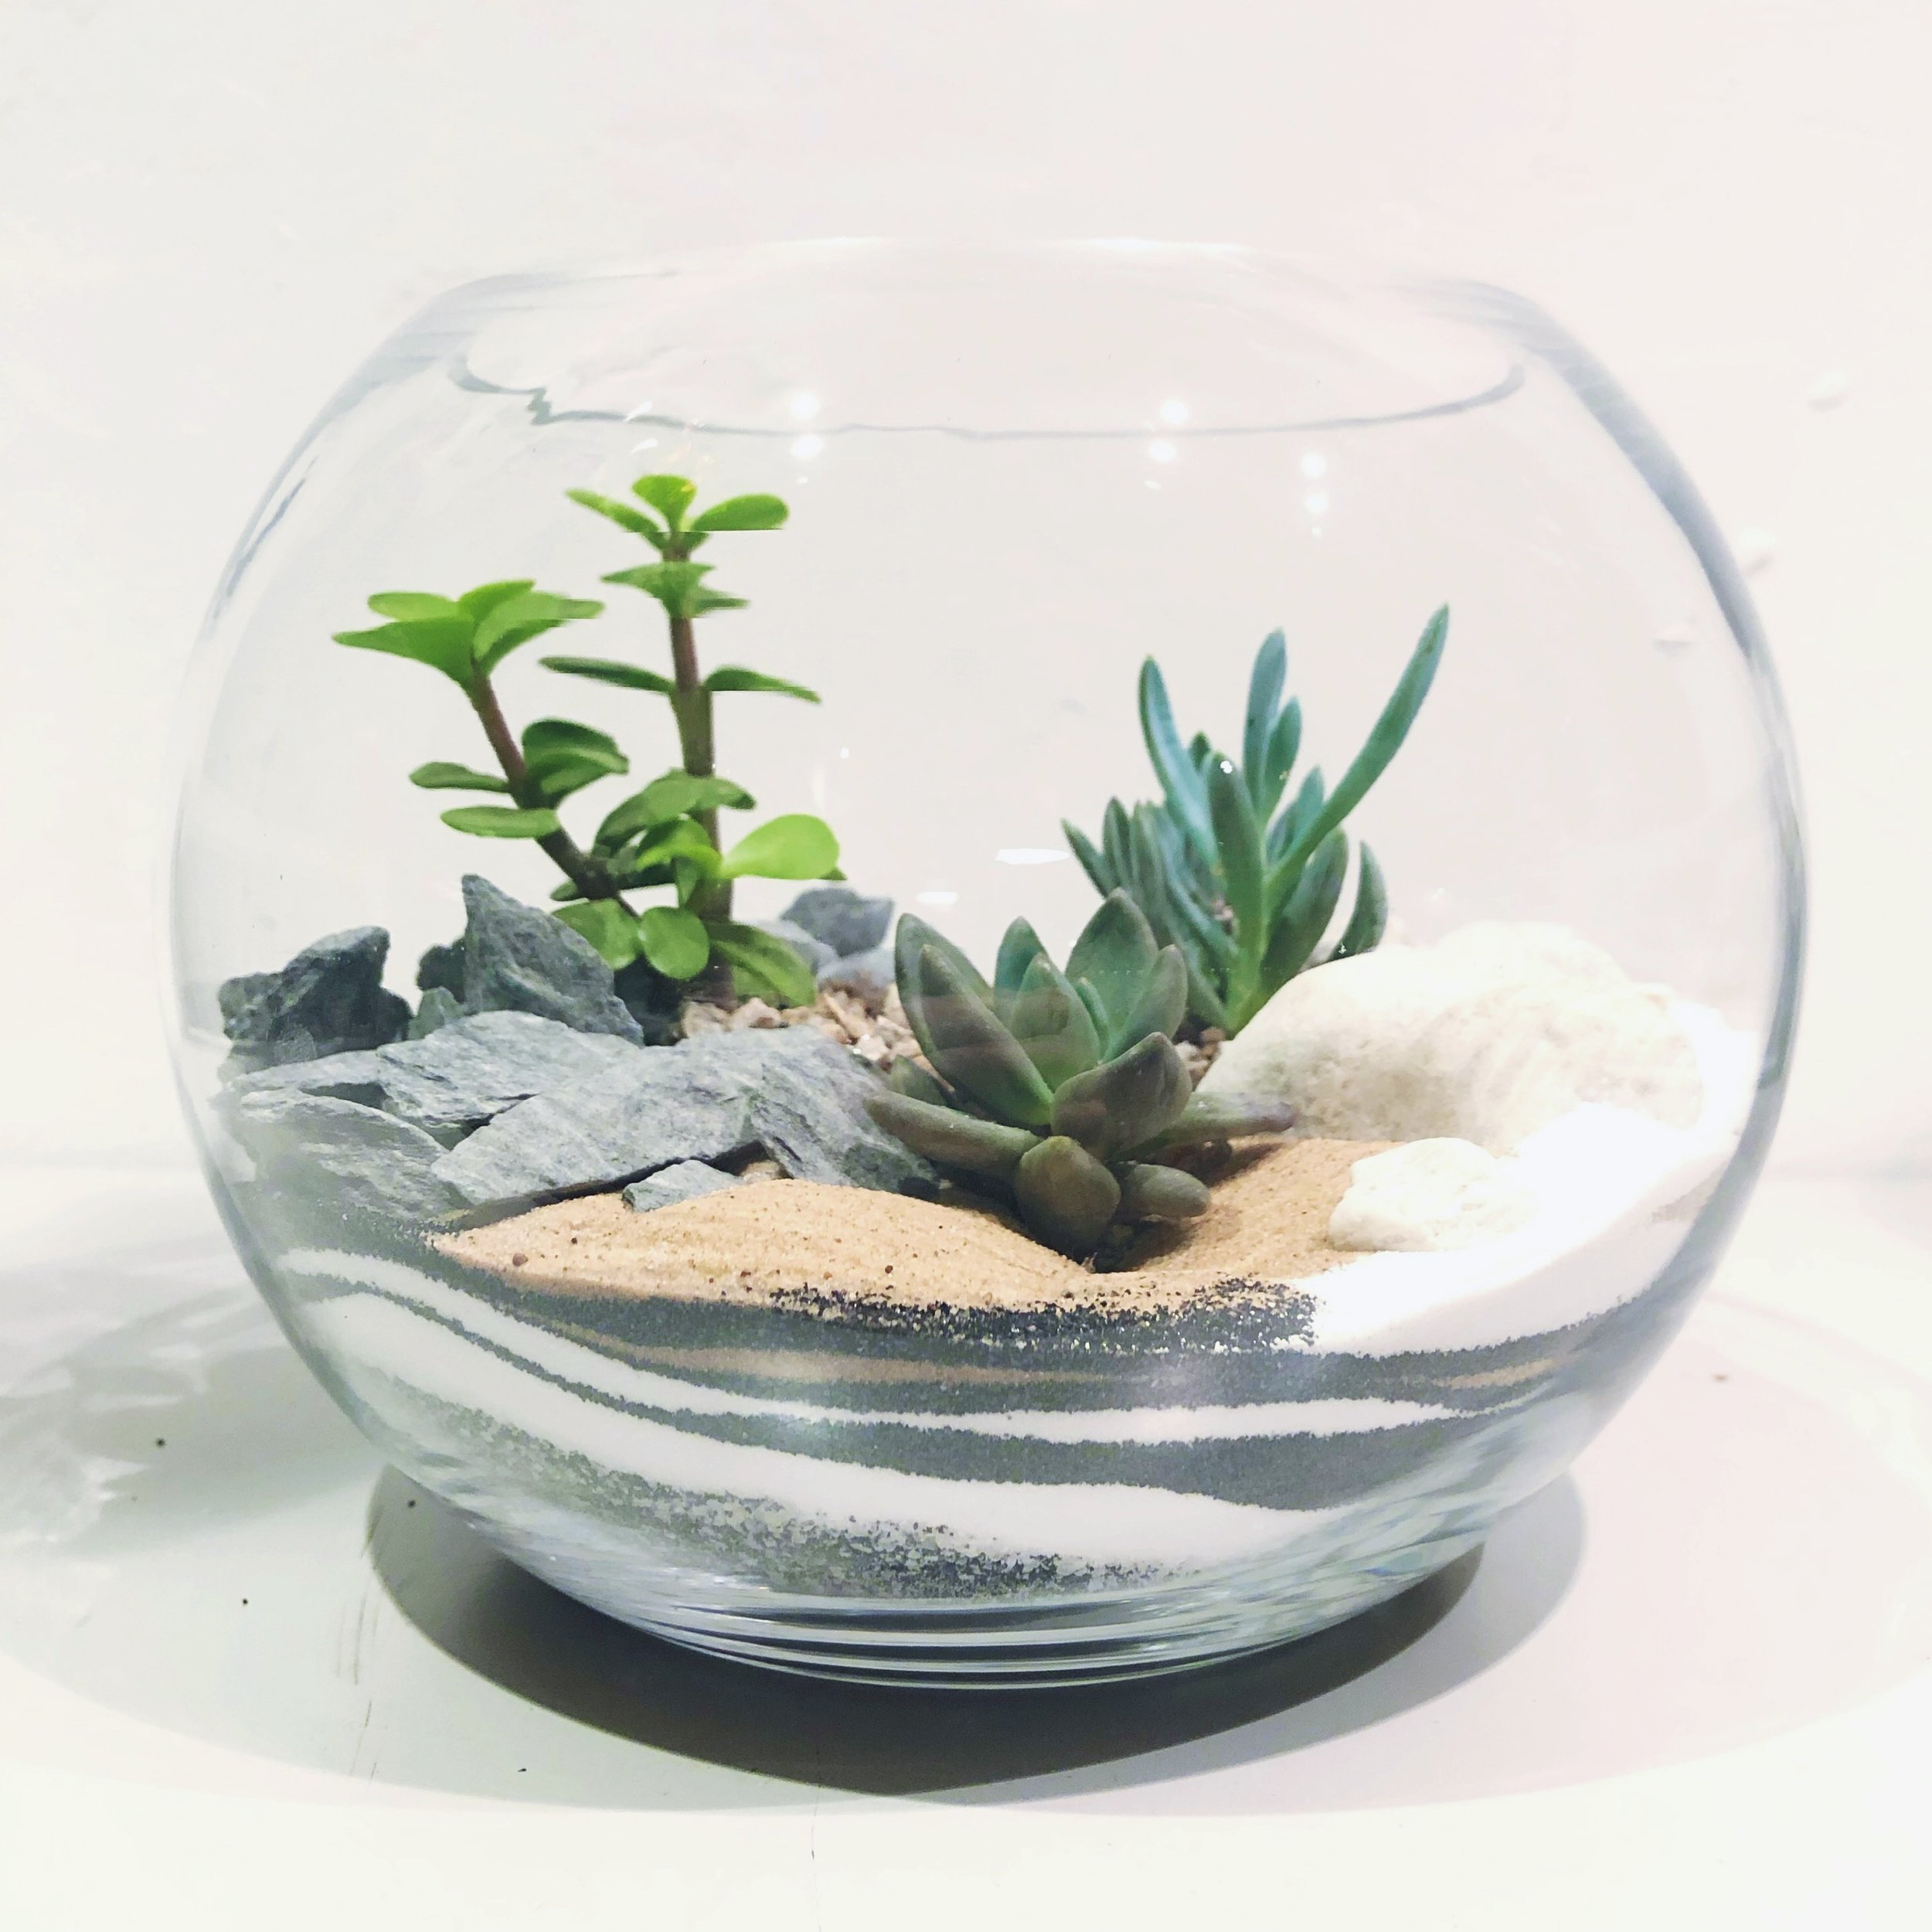 London Terrarium Workshop and Corporate Terrarium Workshops